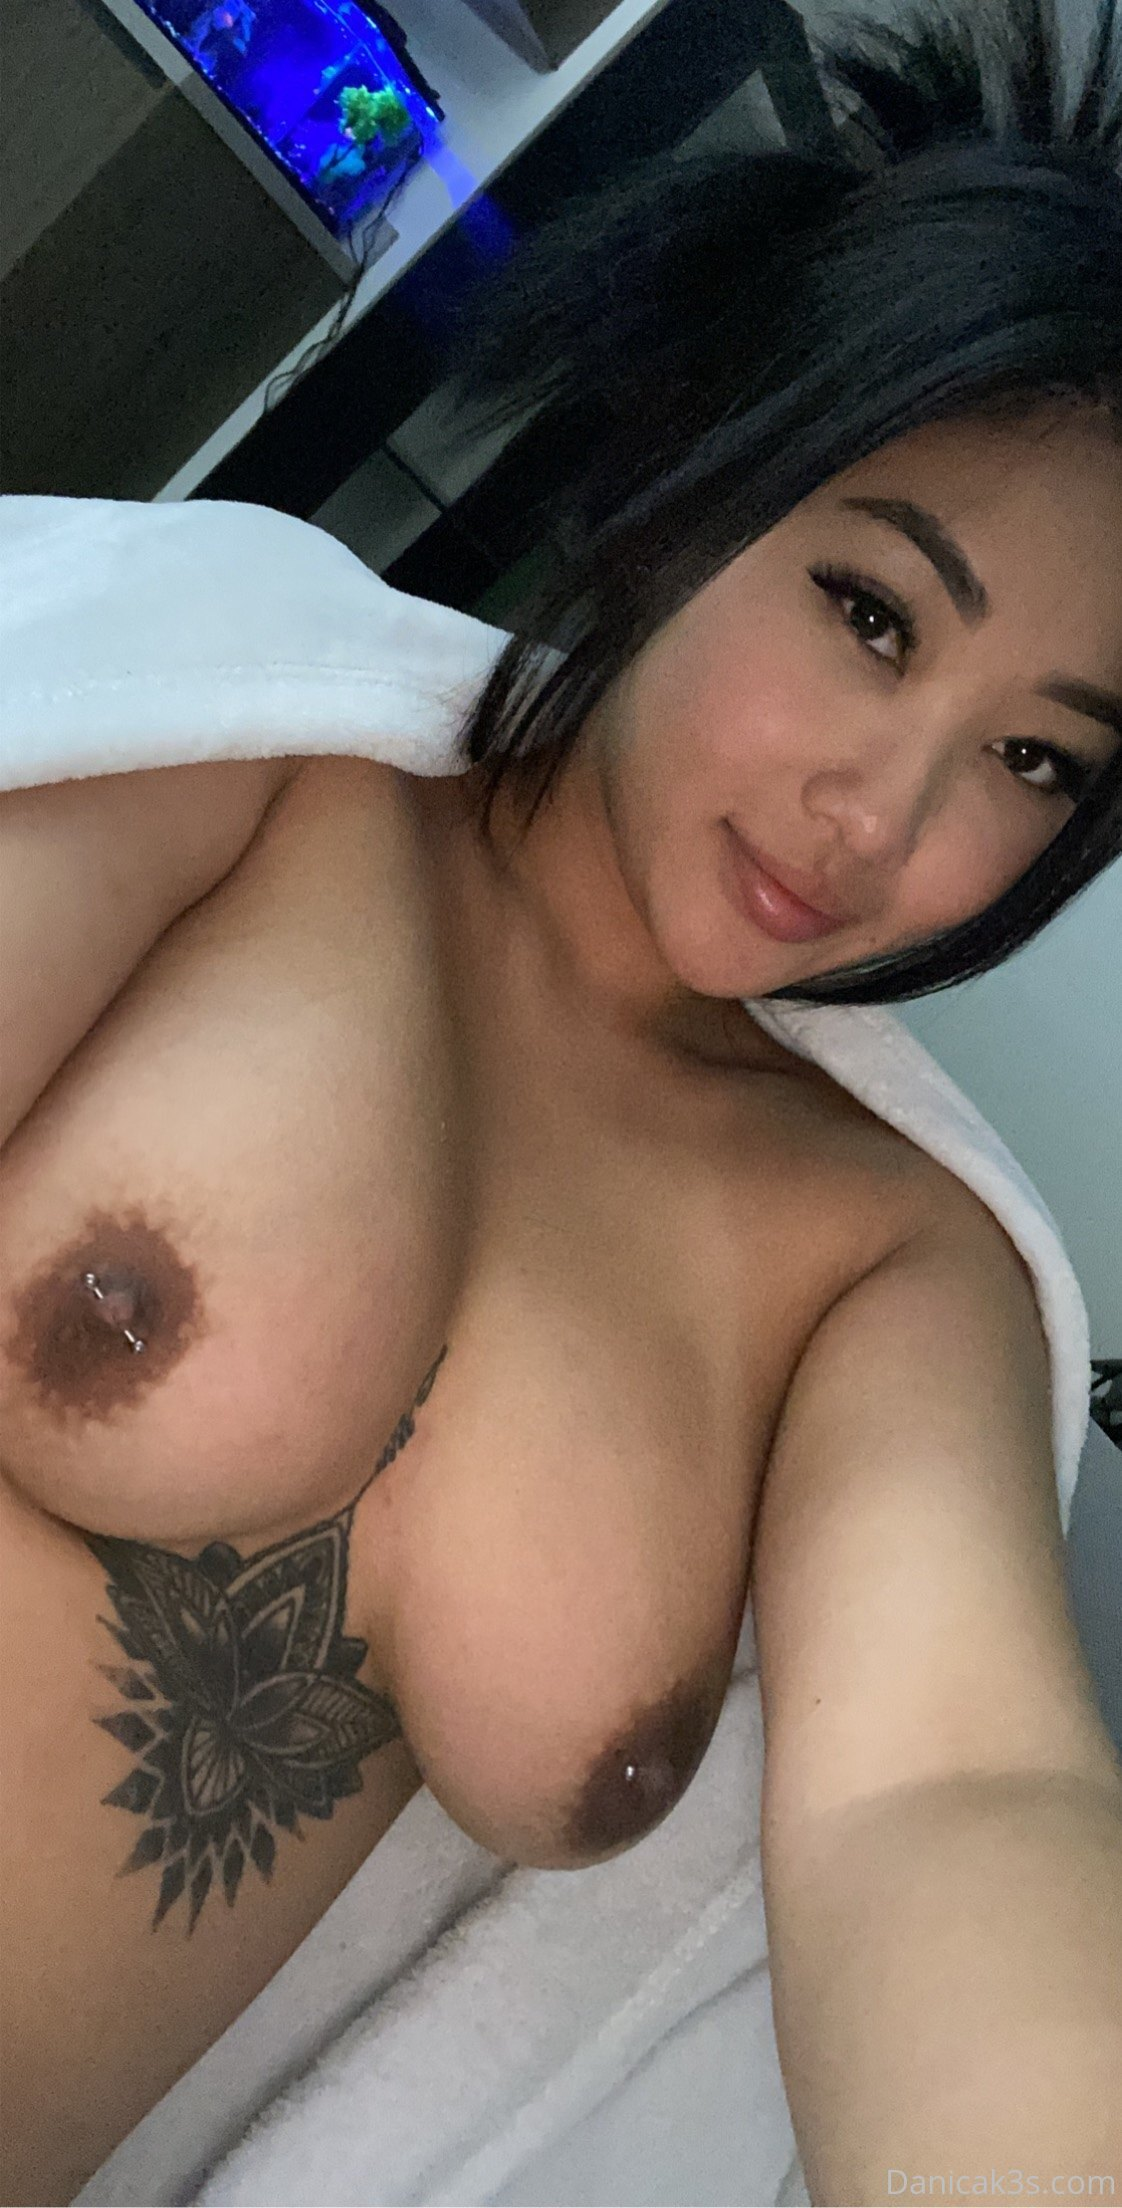 FULL VIDEO: Danicakes Nude & Sex Tape Onlyfans Leaked!